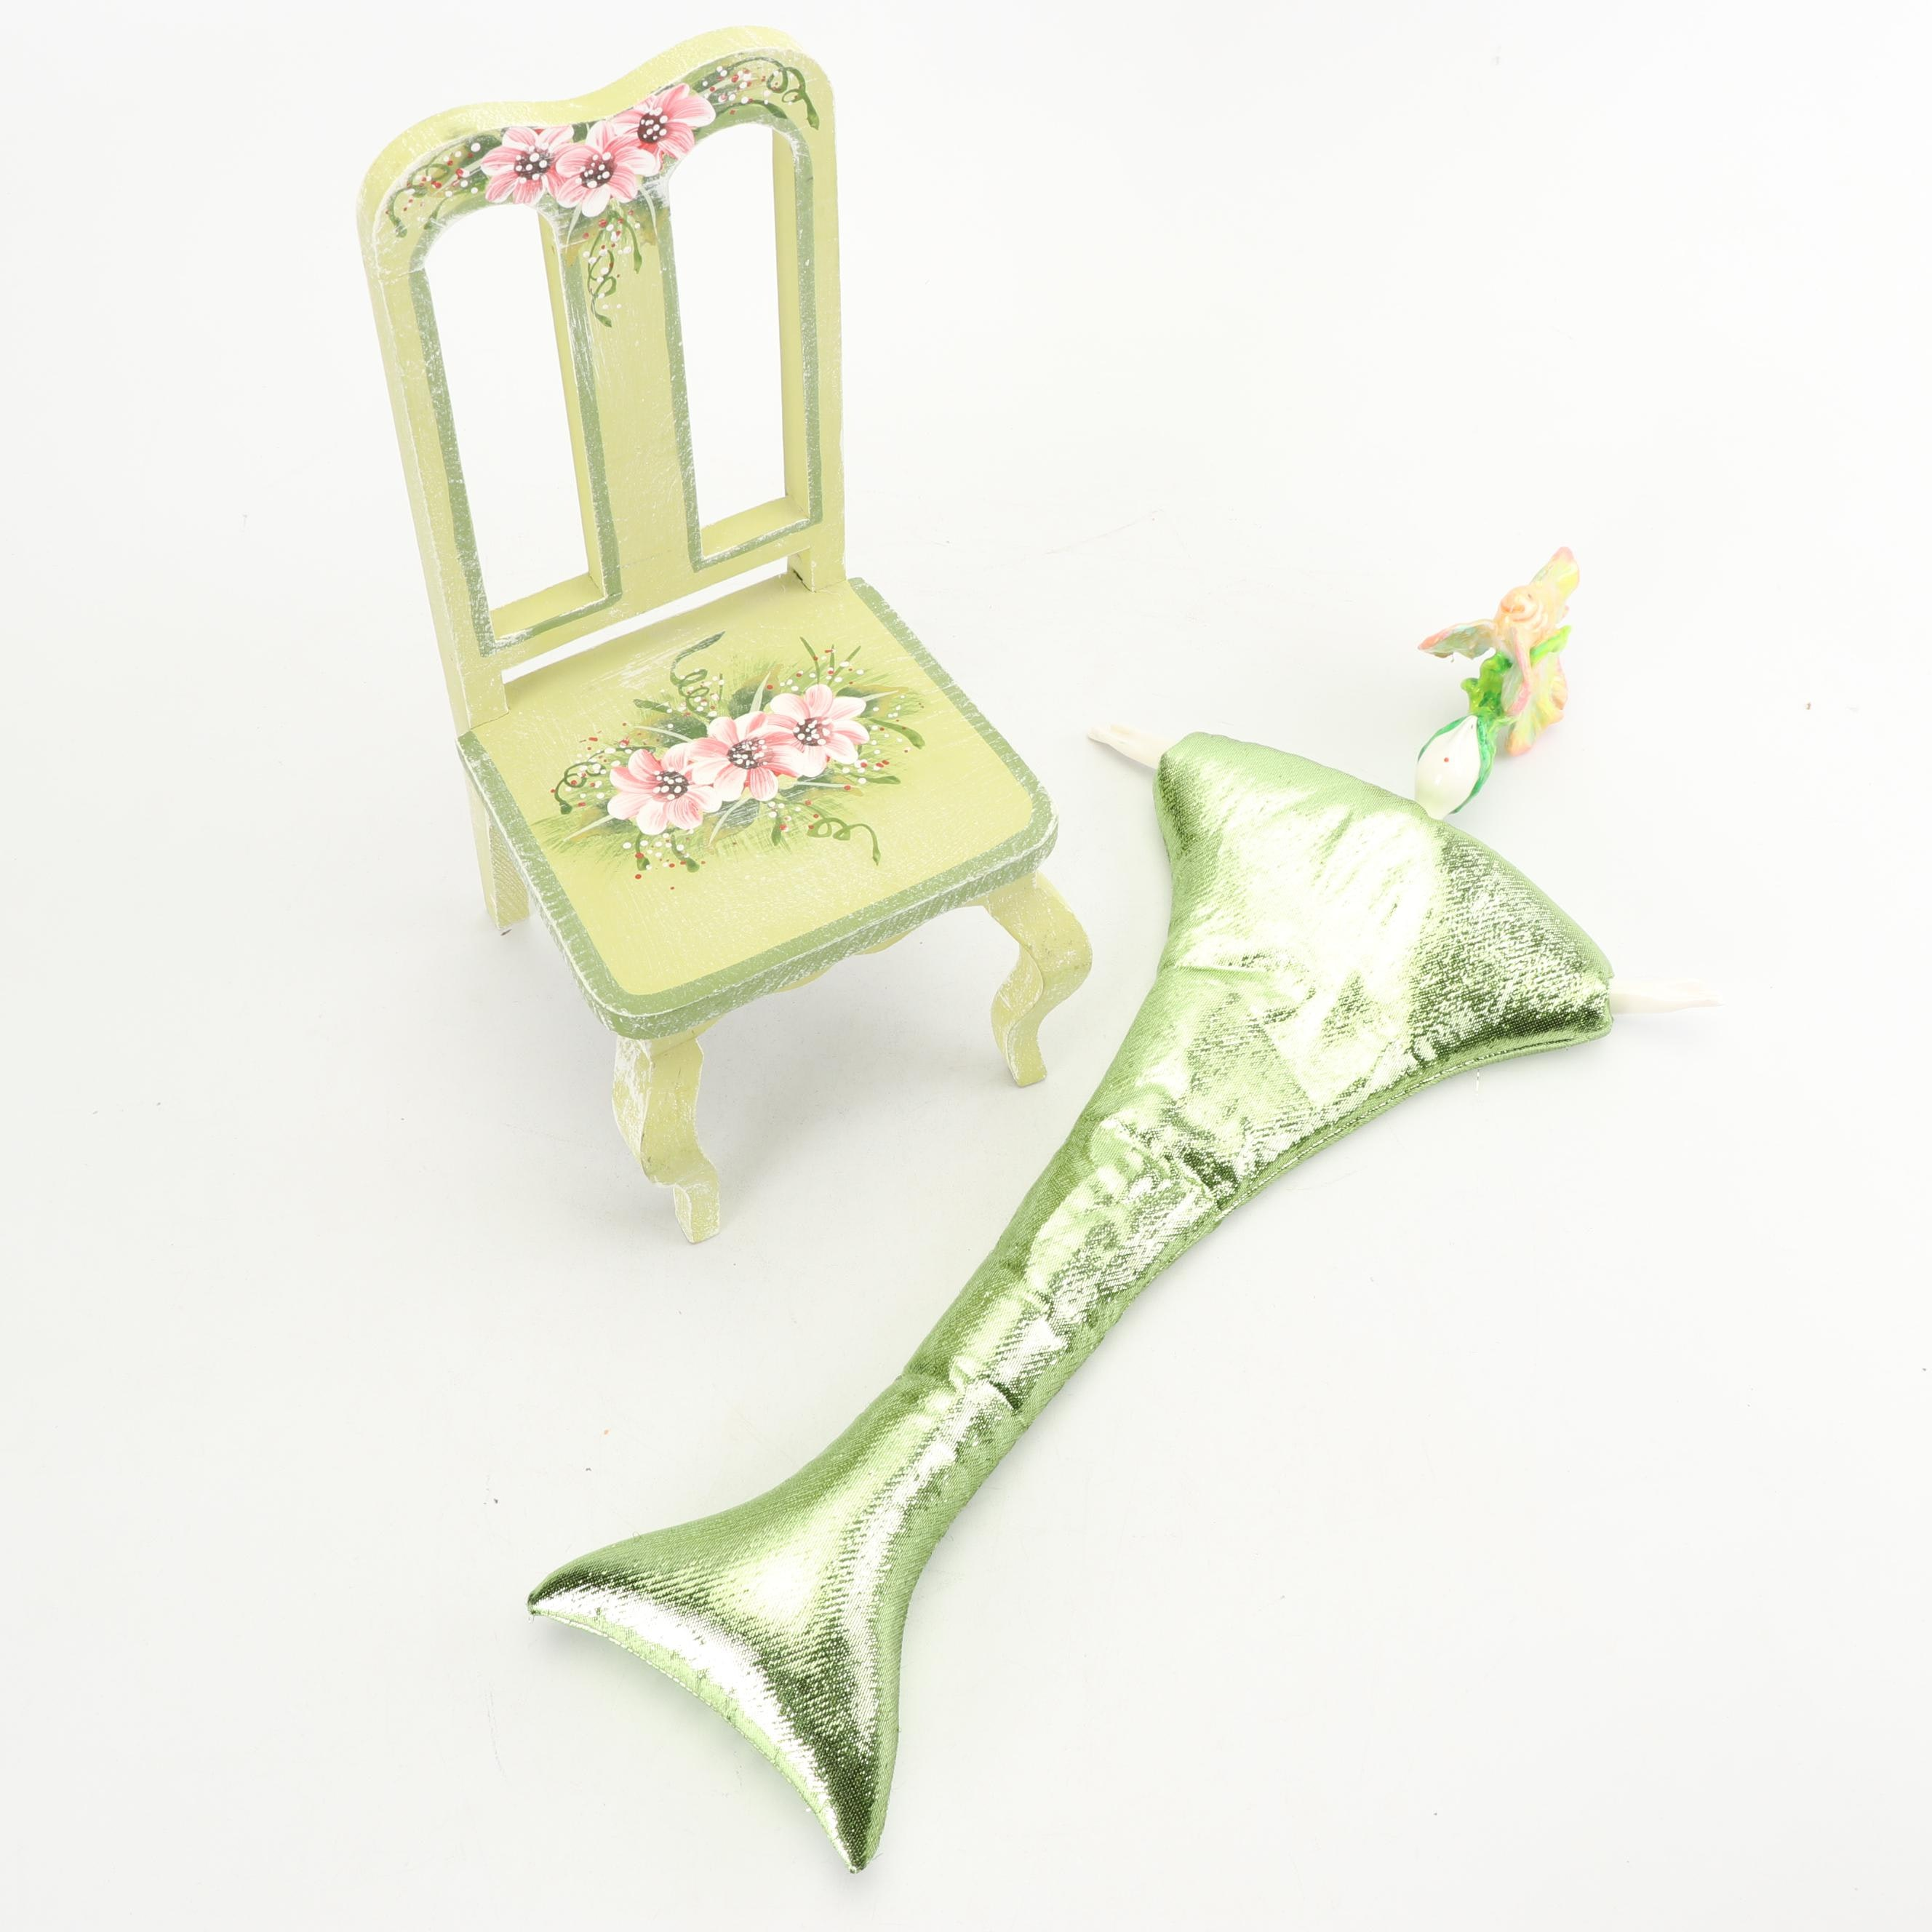 French Poupée Millet Mermaid with Milson & Luis Hand-Painted Doll Chair